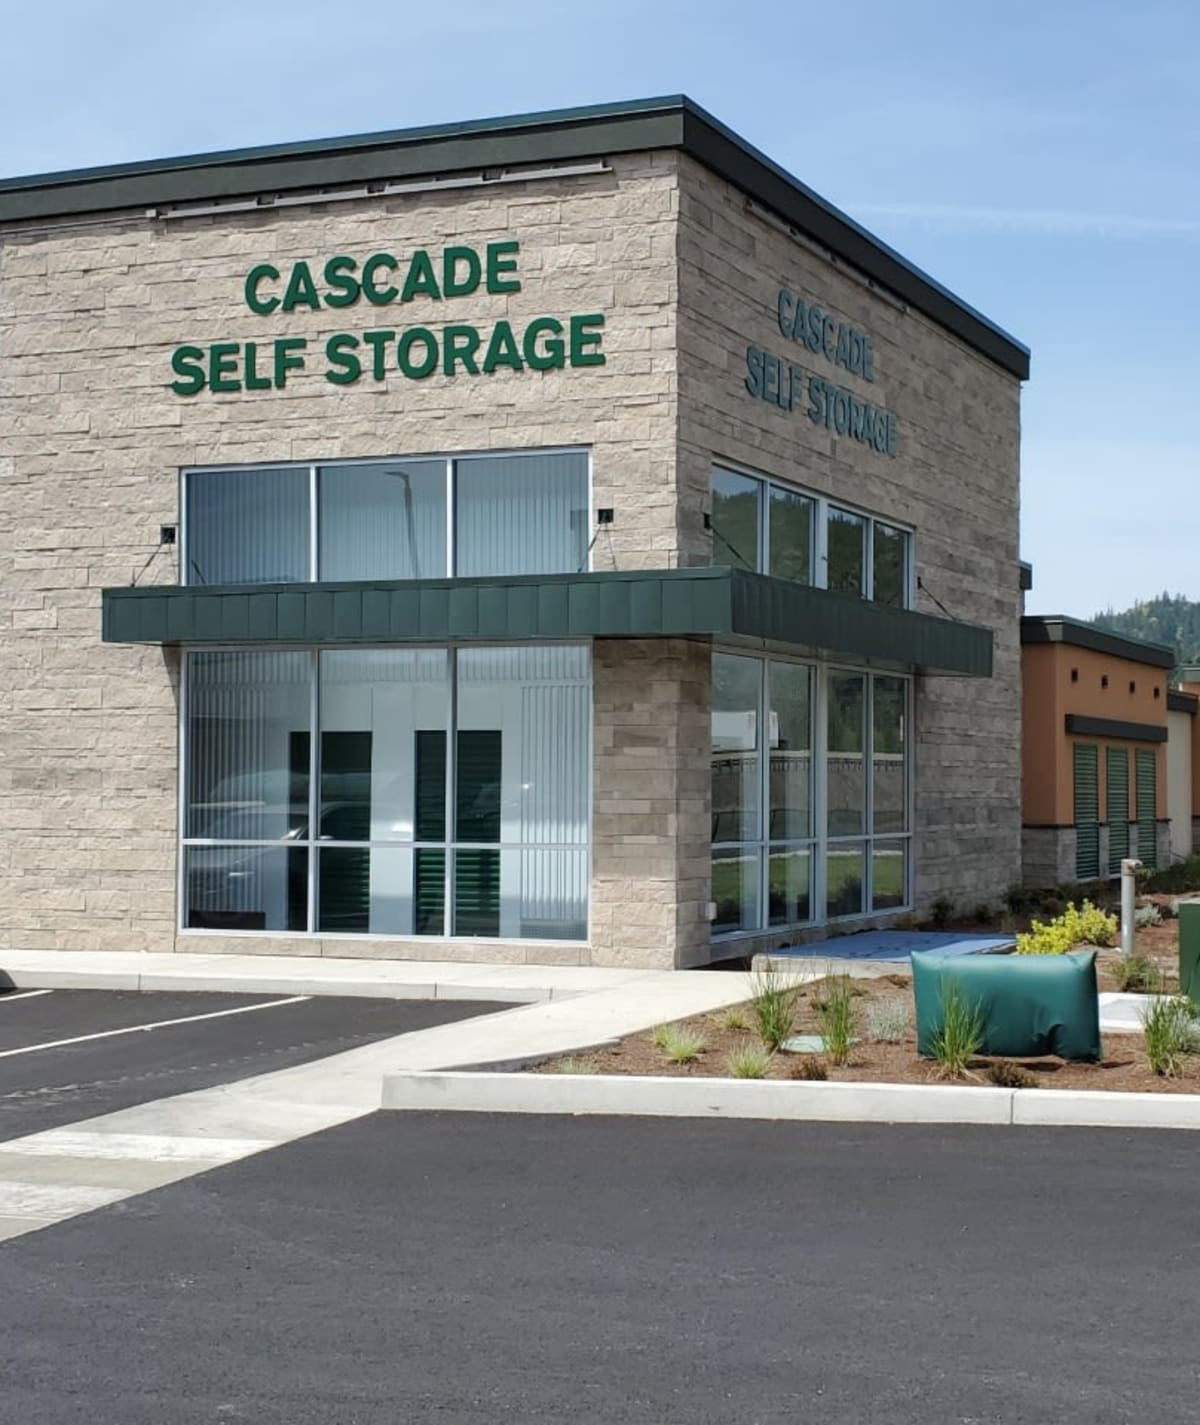 Reviews for Cascade Self Storage in Grants Pass, Oregon